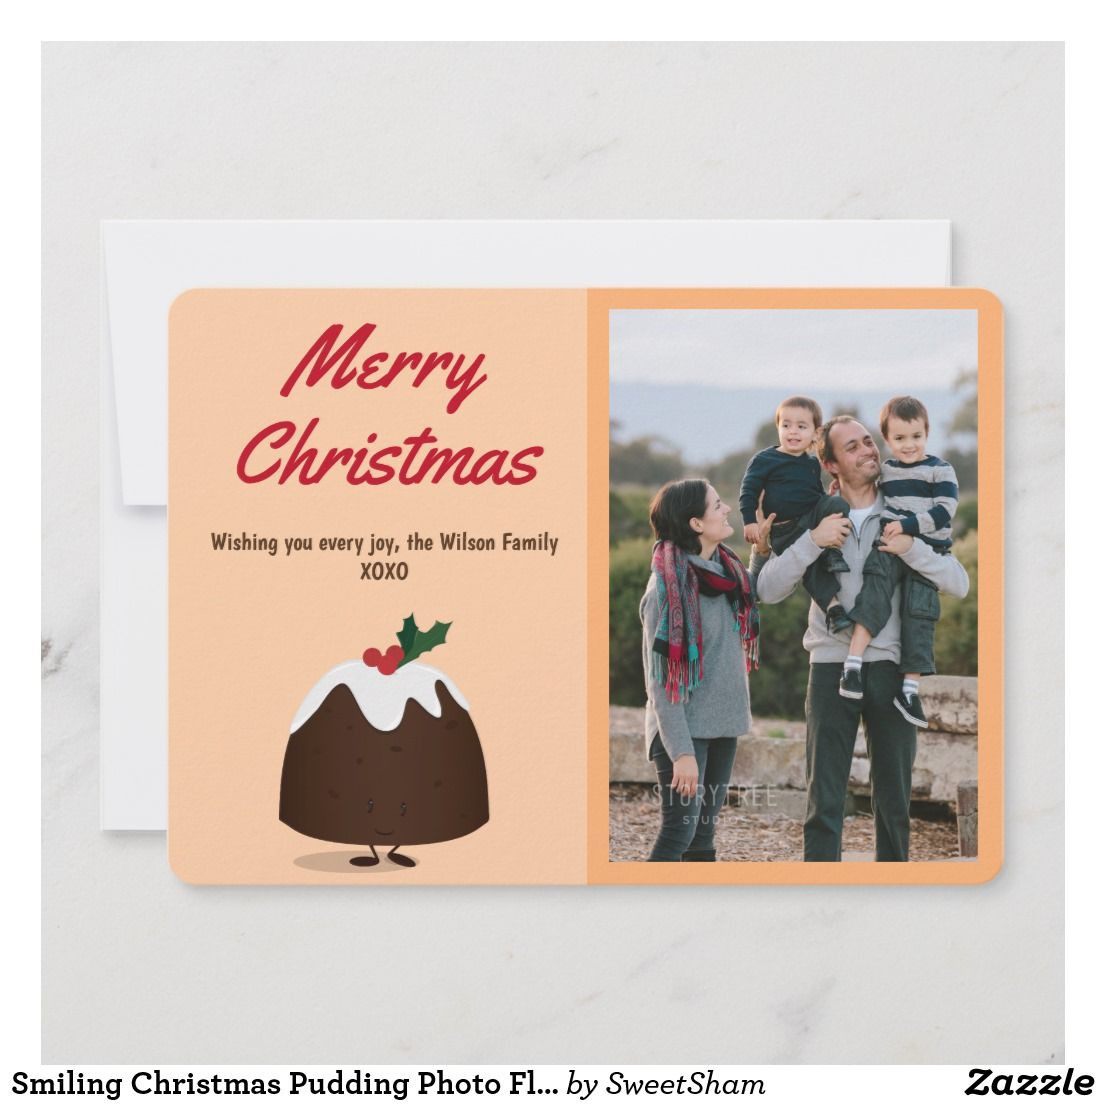 Smiling Christmas Pudding Photo Flat Card Tan This Holiday Card Shows A Smiling Cartoon Christmas Merry Christmas Wishes Christmas Photo Cards Holiday Cards